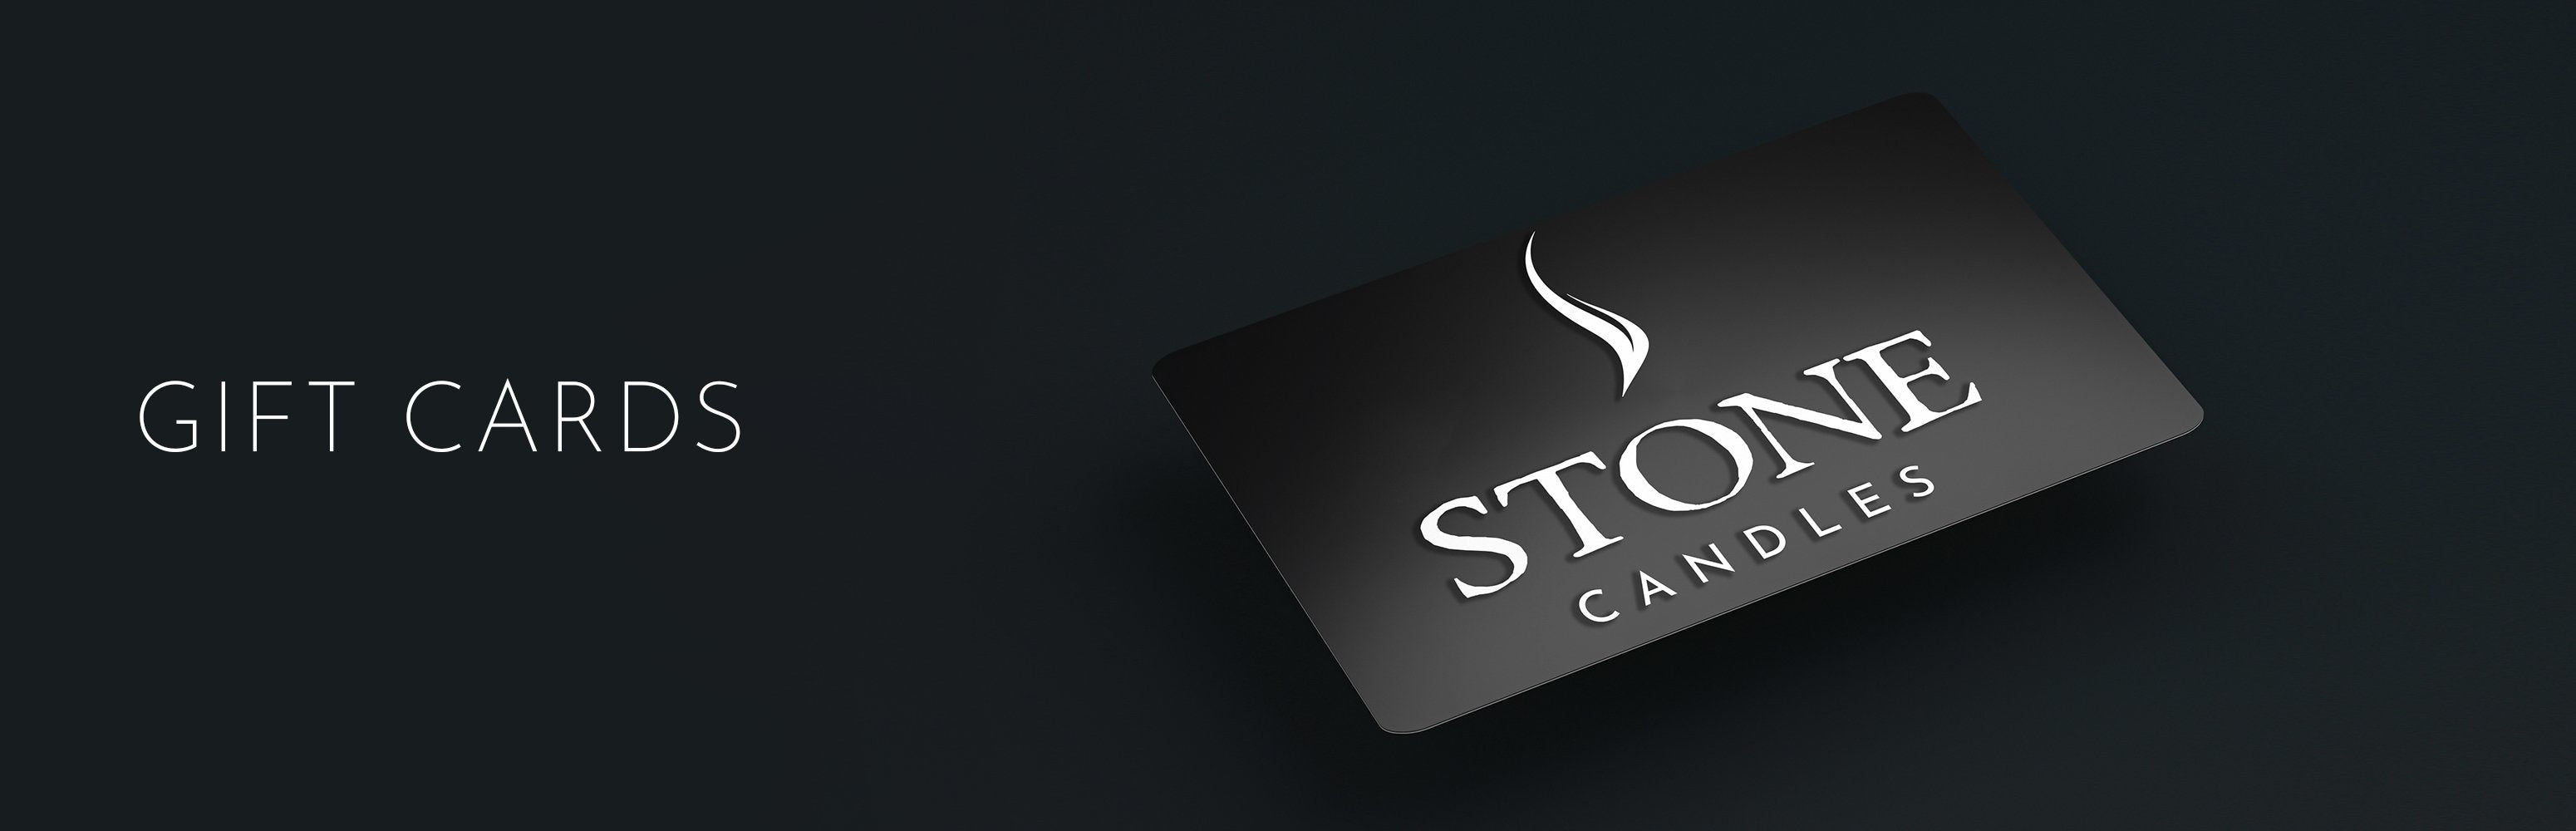 Stone Candles Gift Card Collection Banner